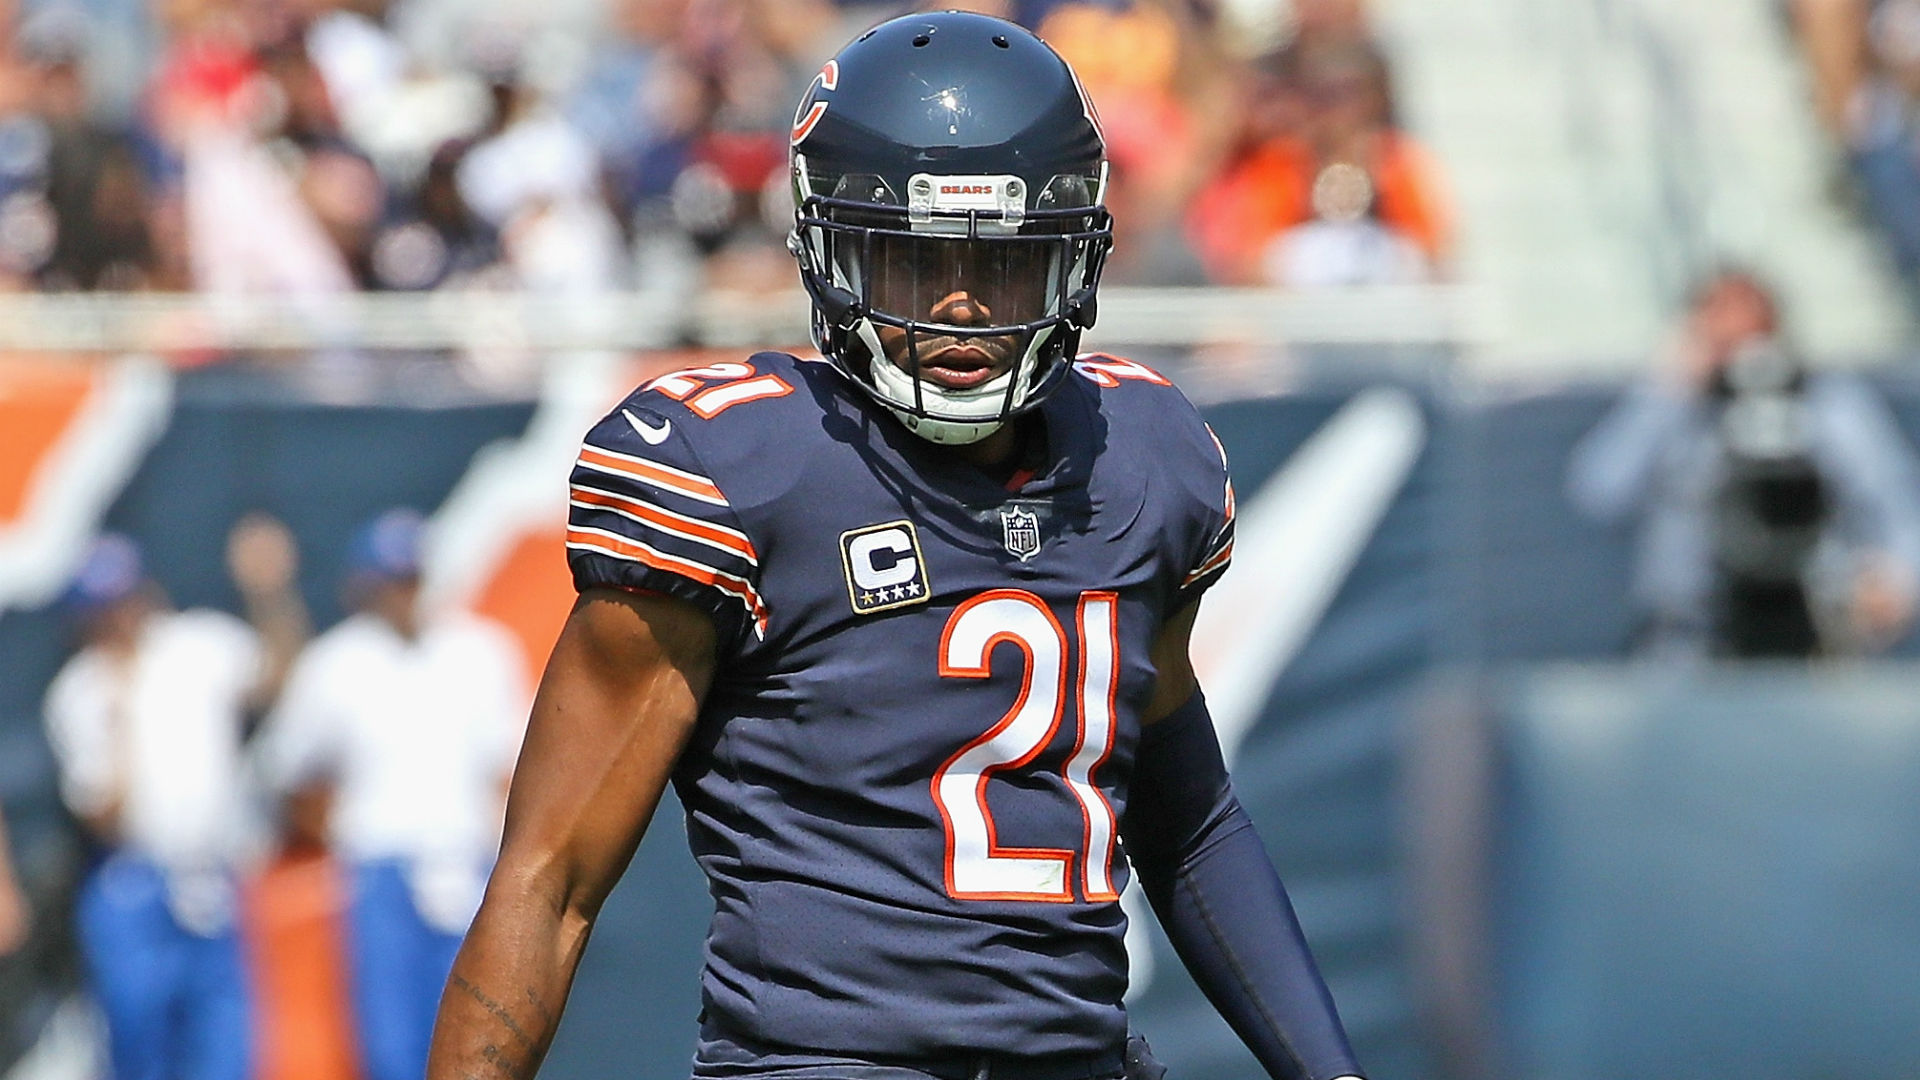 Bears safety Quintin Demps out indefinitely with broken arm